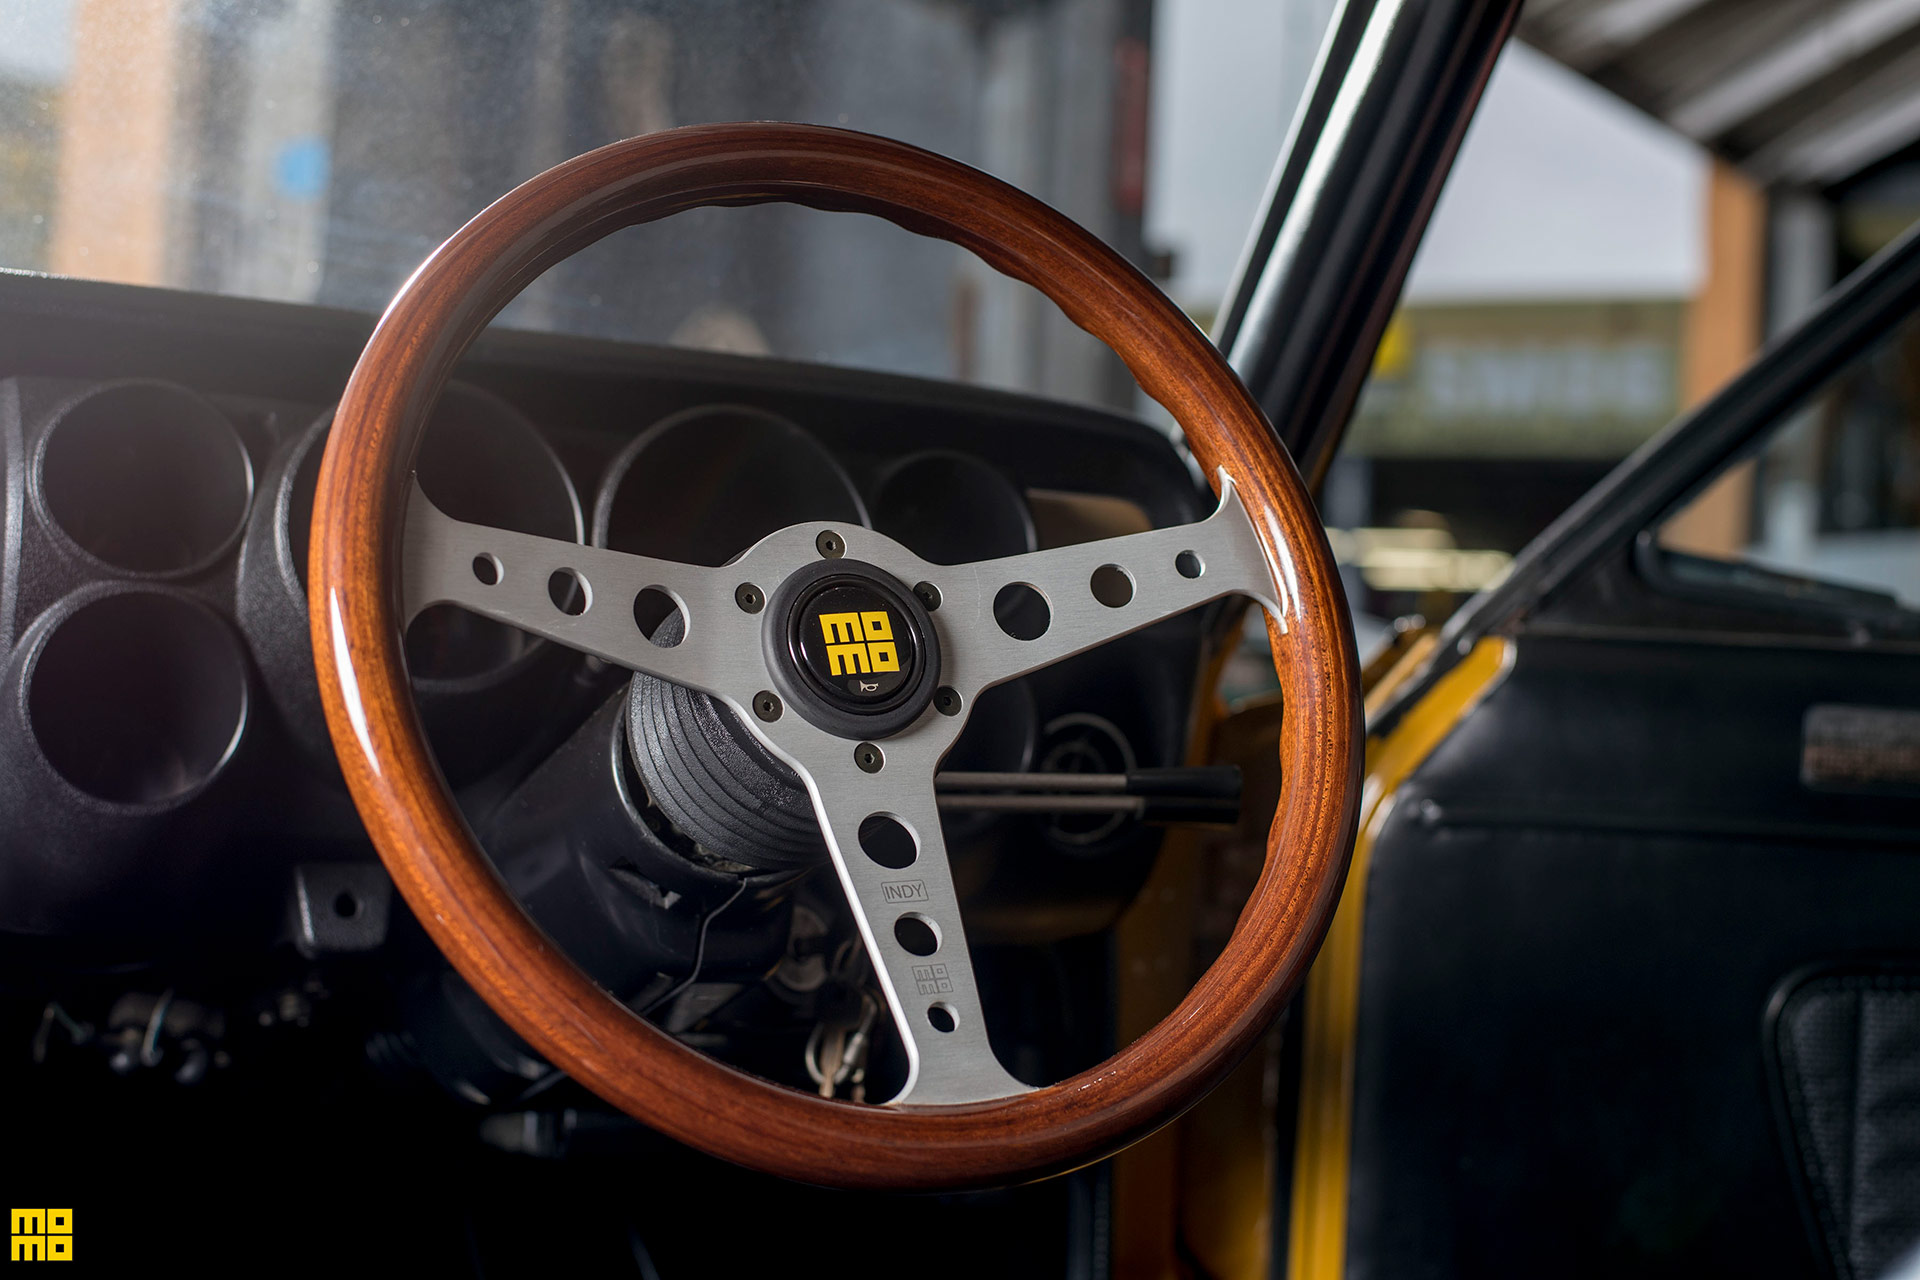 Beautiful Nissan 'Hakosuka' Skyline GT-R Equipped With A MOMO Heritage Indy Steering Wheel